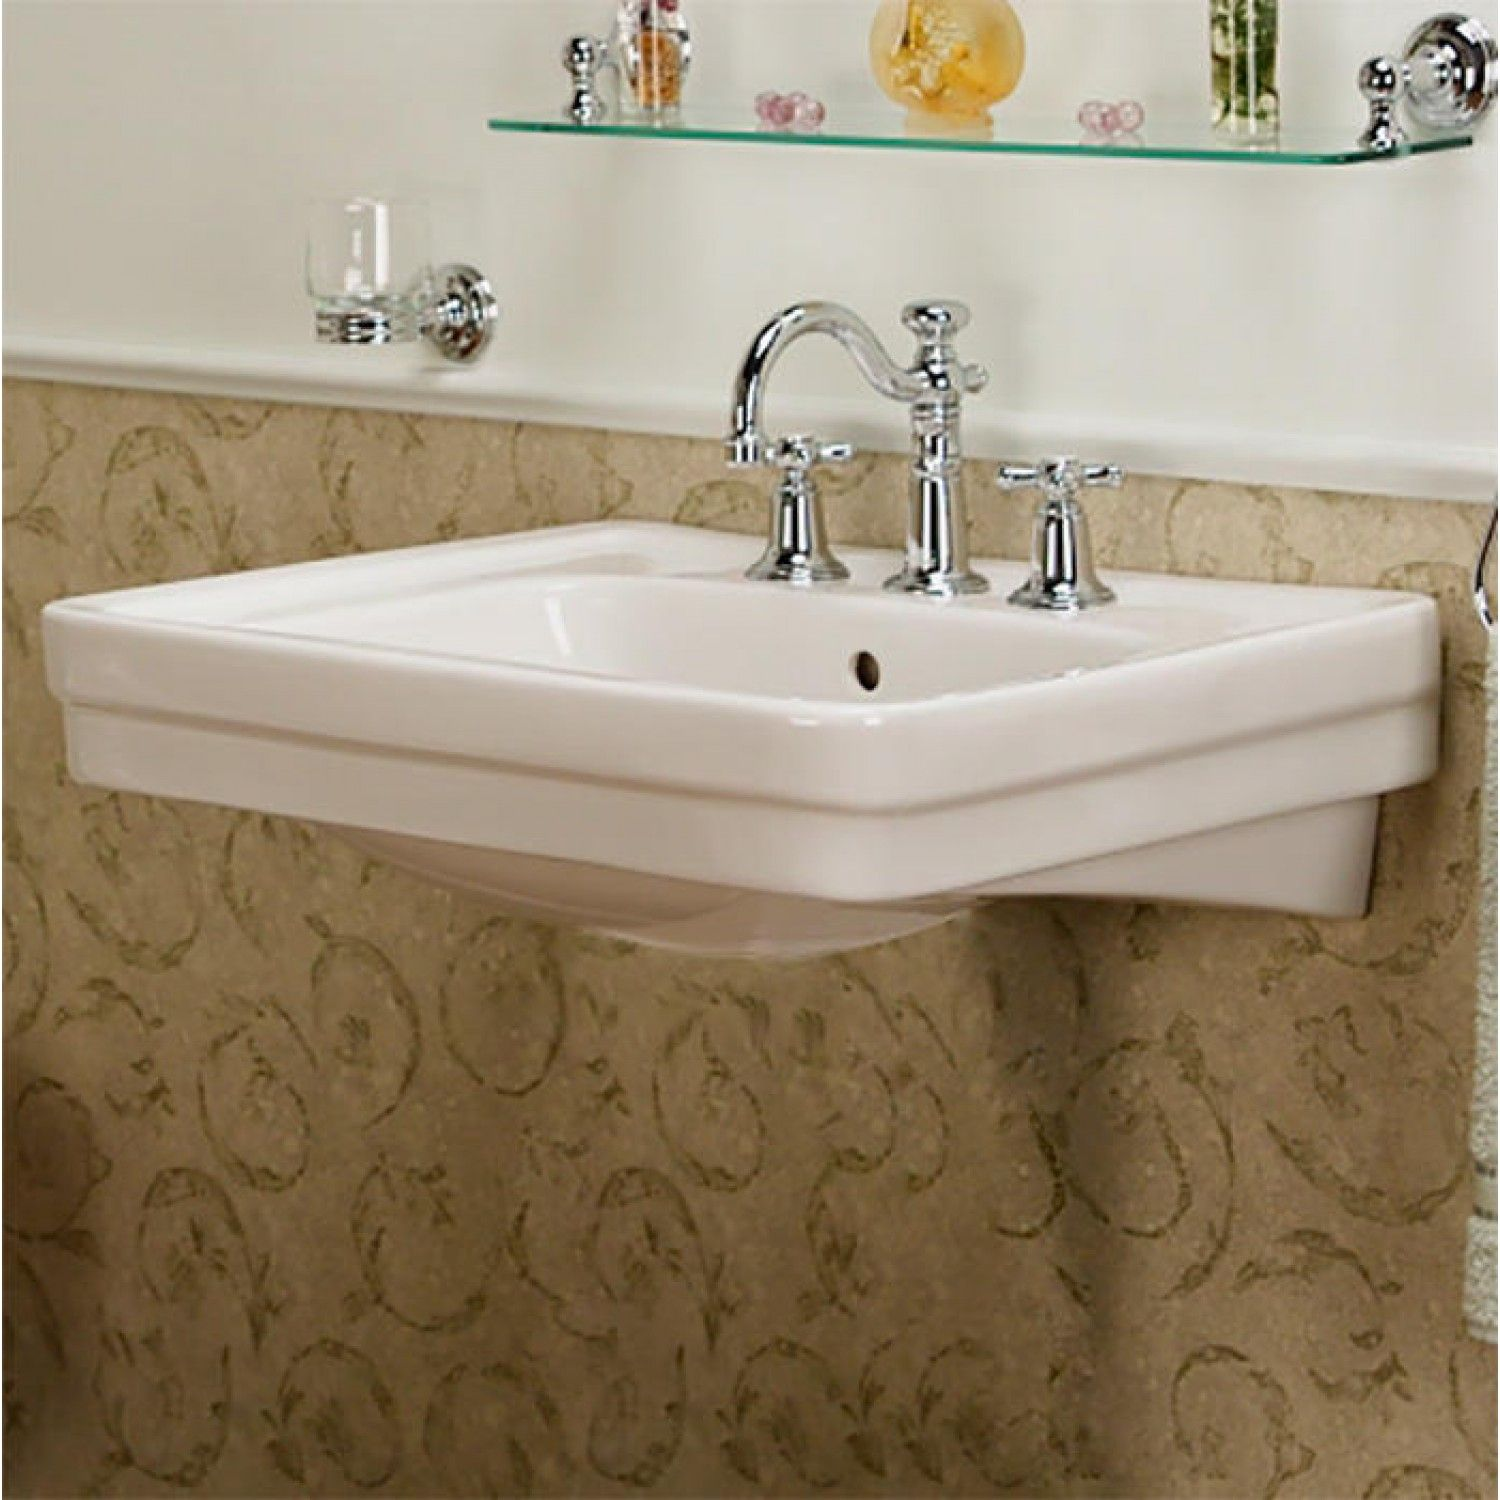 Sussex Wall Mount Bathroom Sink Wall Mount Sinks Bathroom